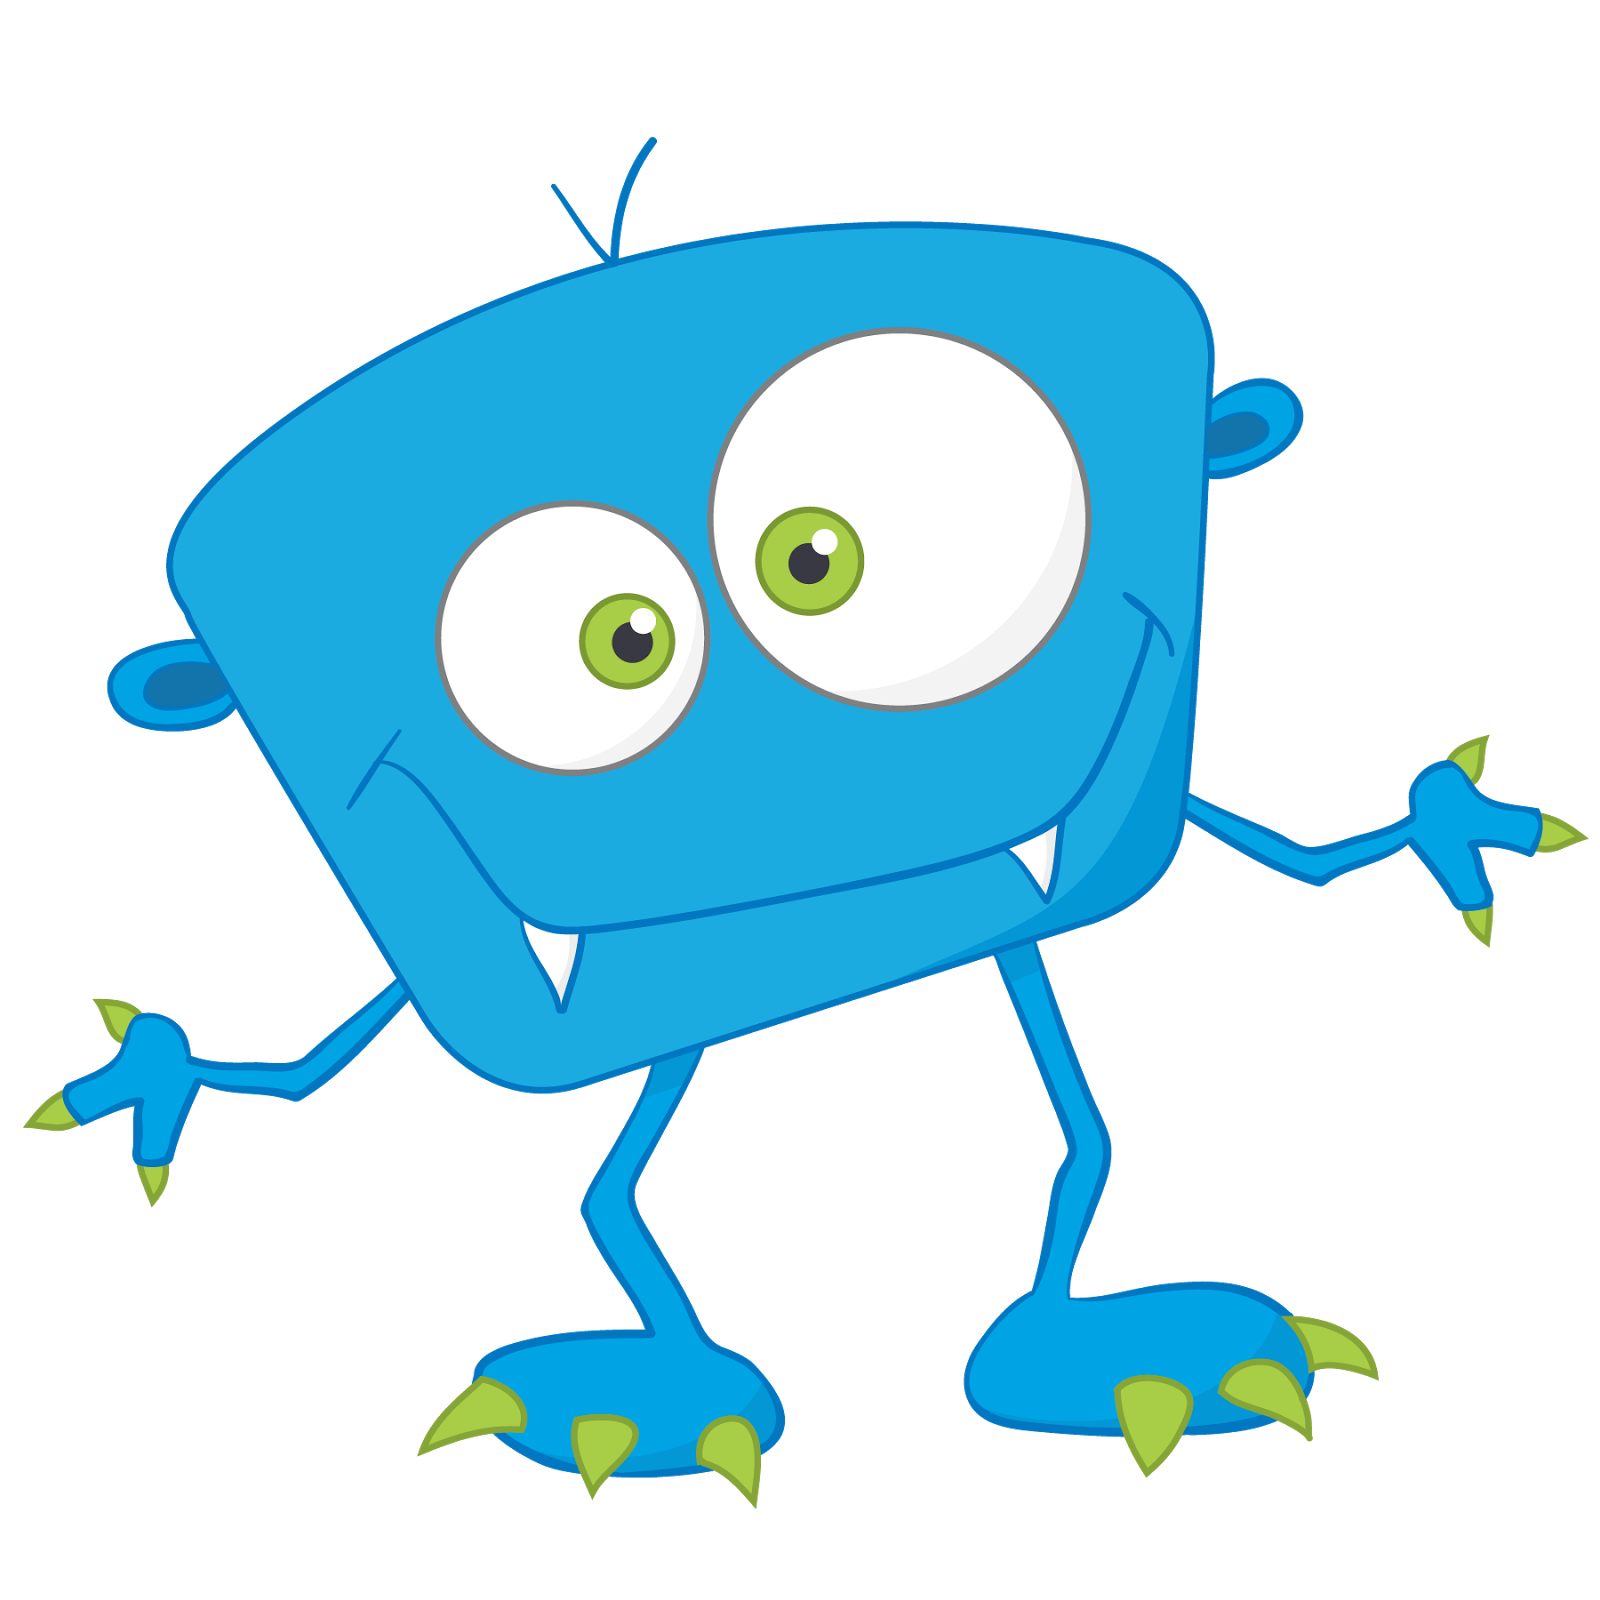 Cookie monster clipart the cliparts - Lil Monster PNG